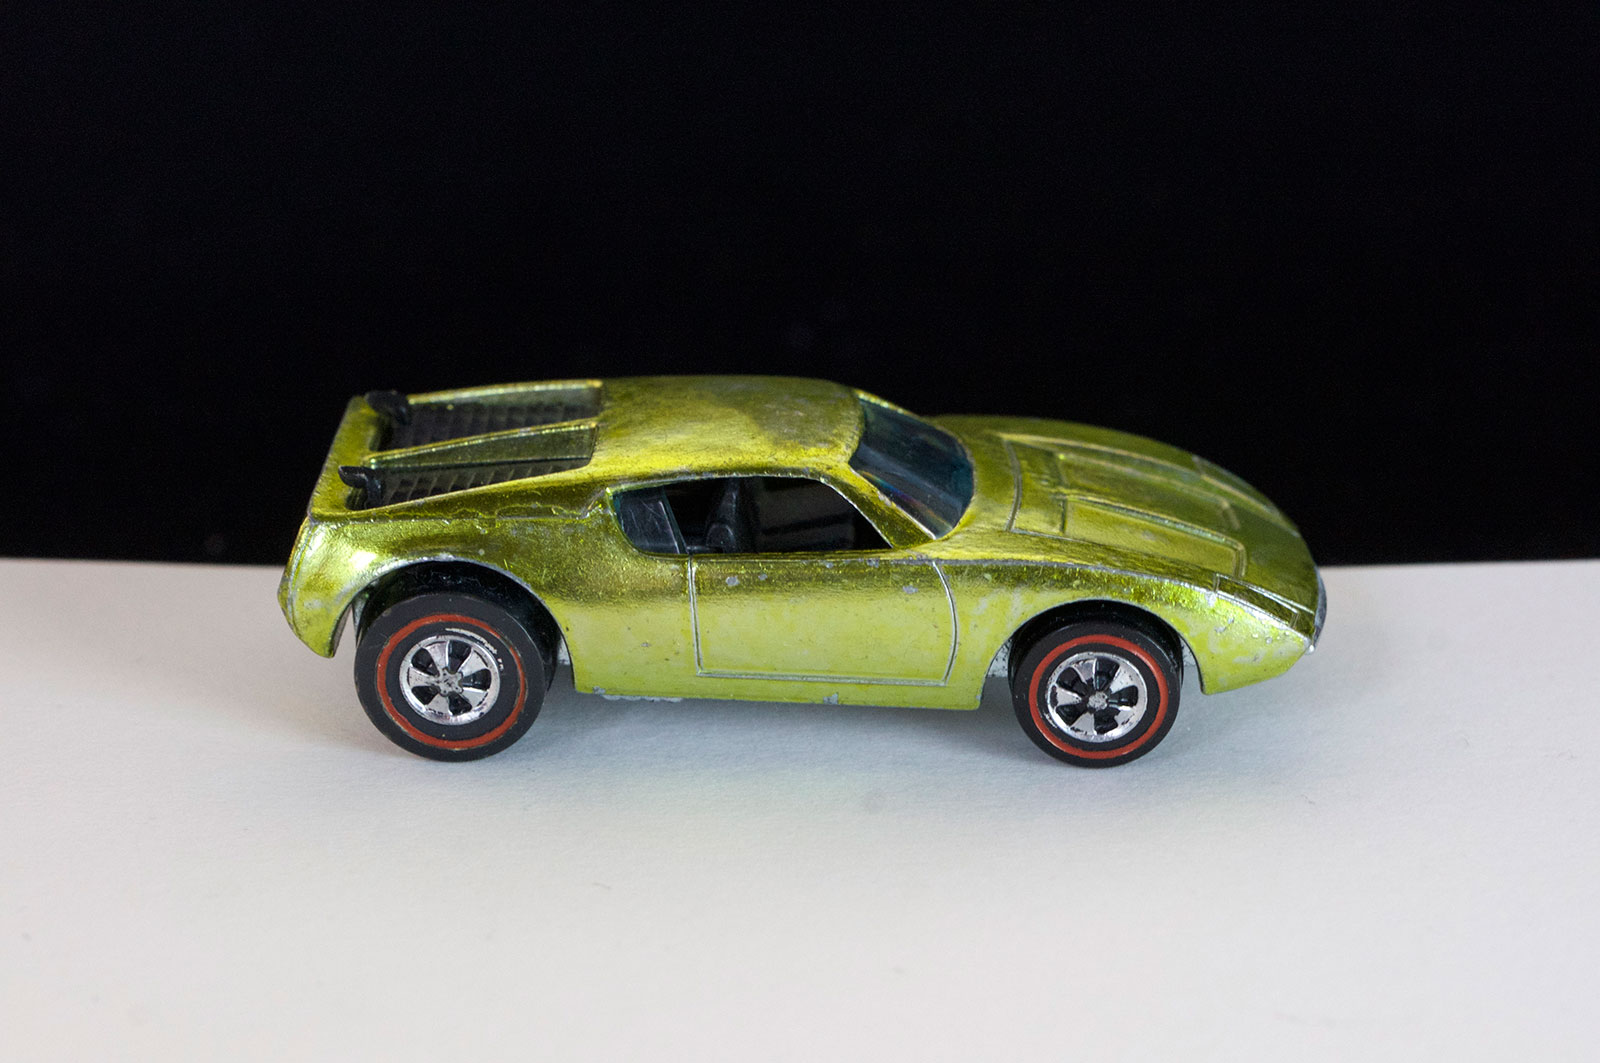 Hot Wheels Redline Lime Yellow AMX 2